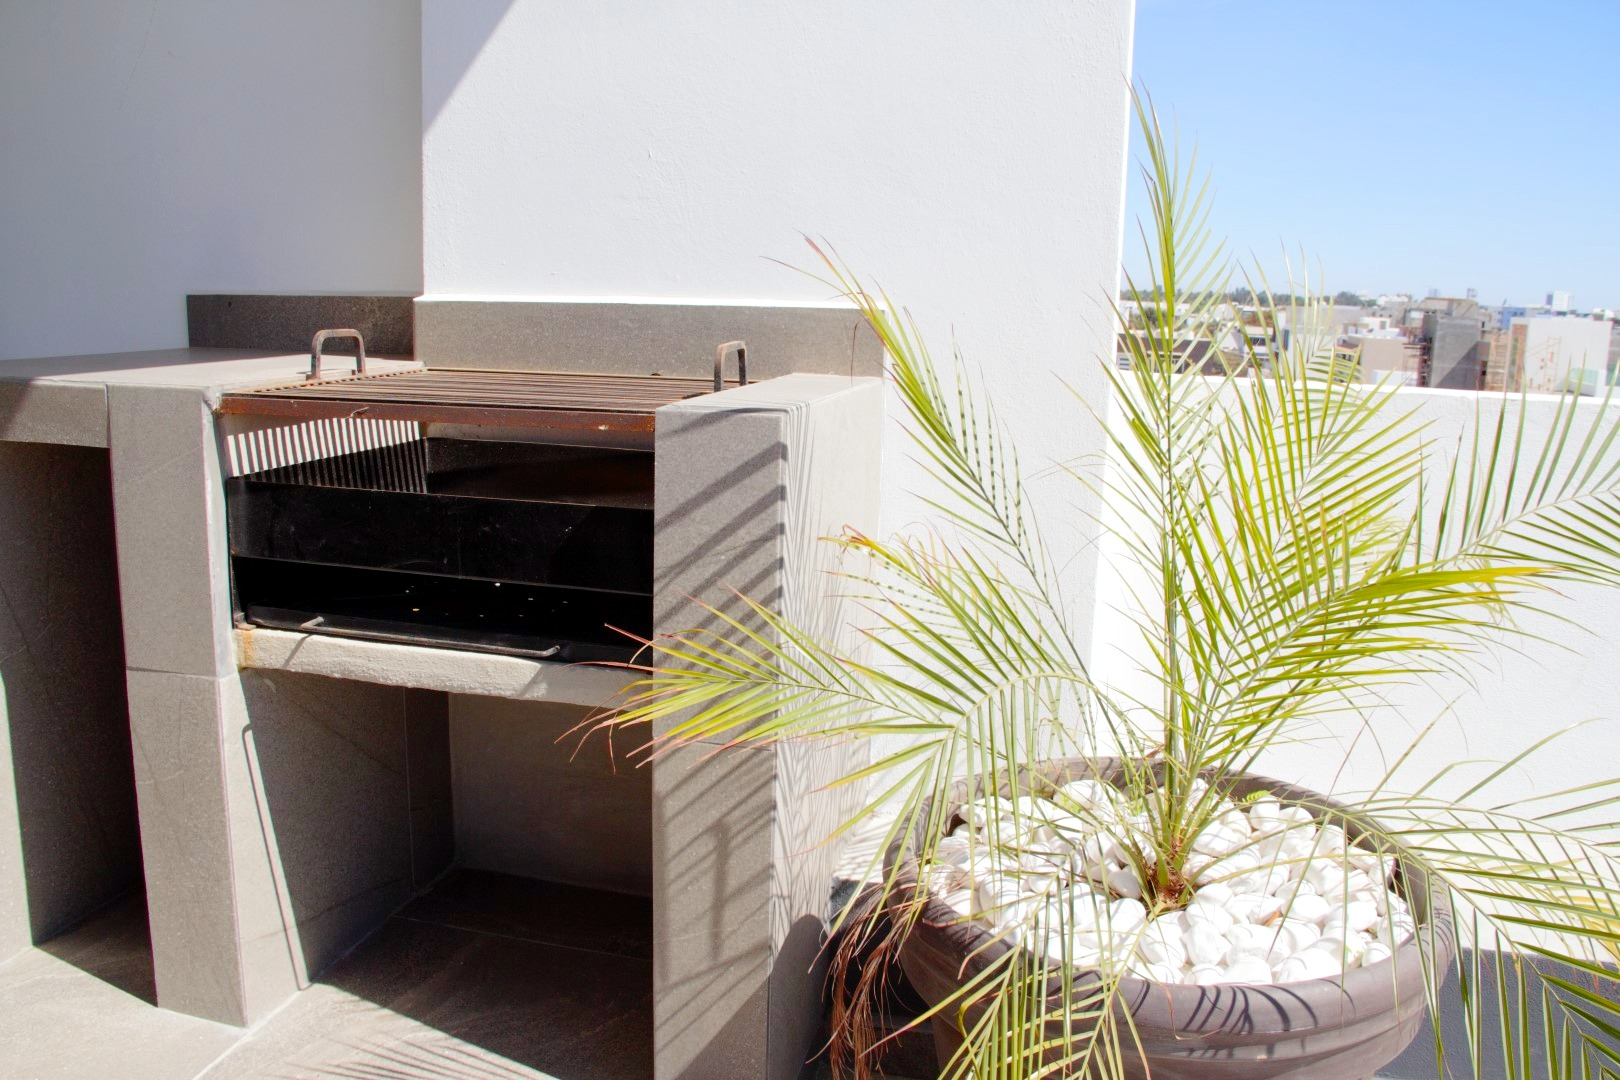 Shared charcoal grill on roof-top.